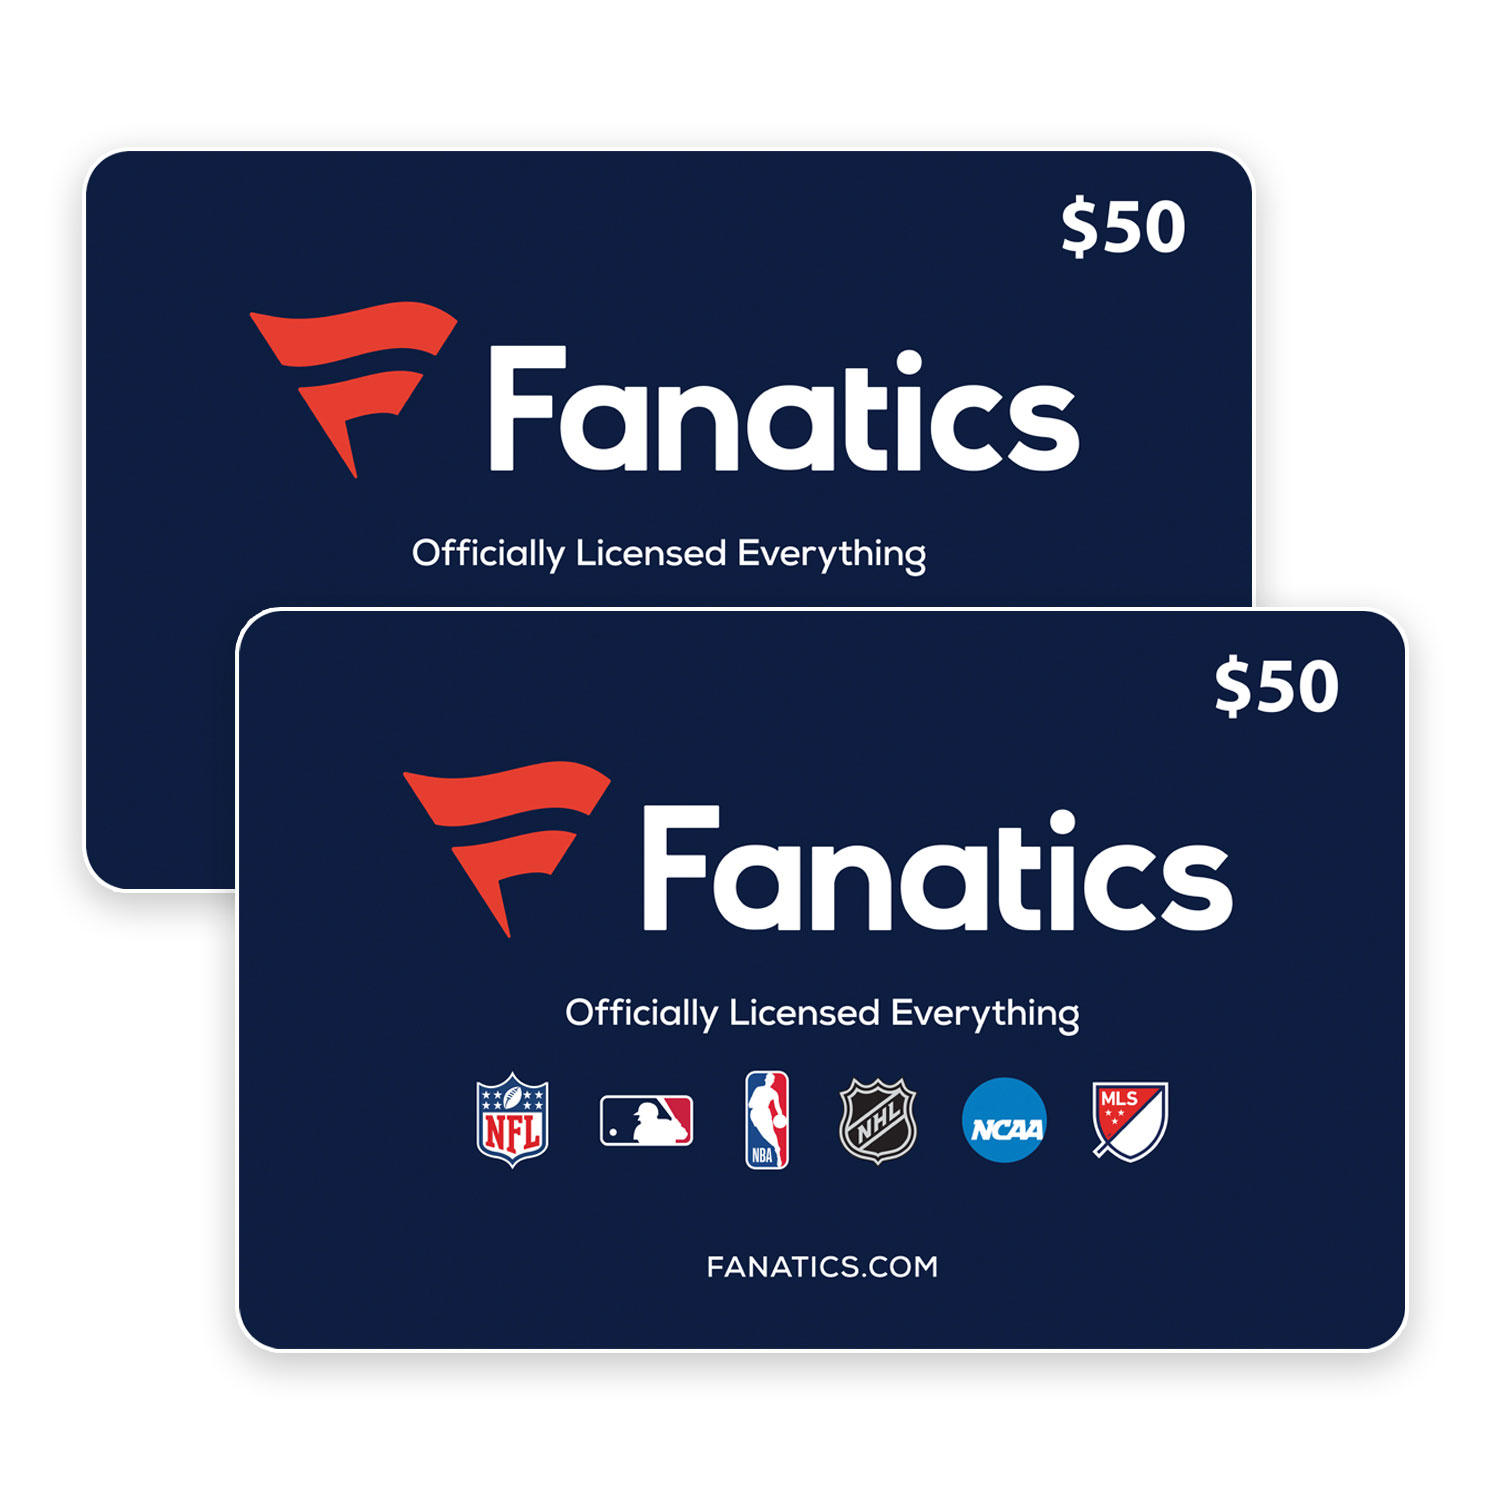 $100 (2 x $50) Fanatics Gift Cards